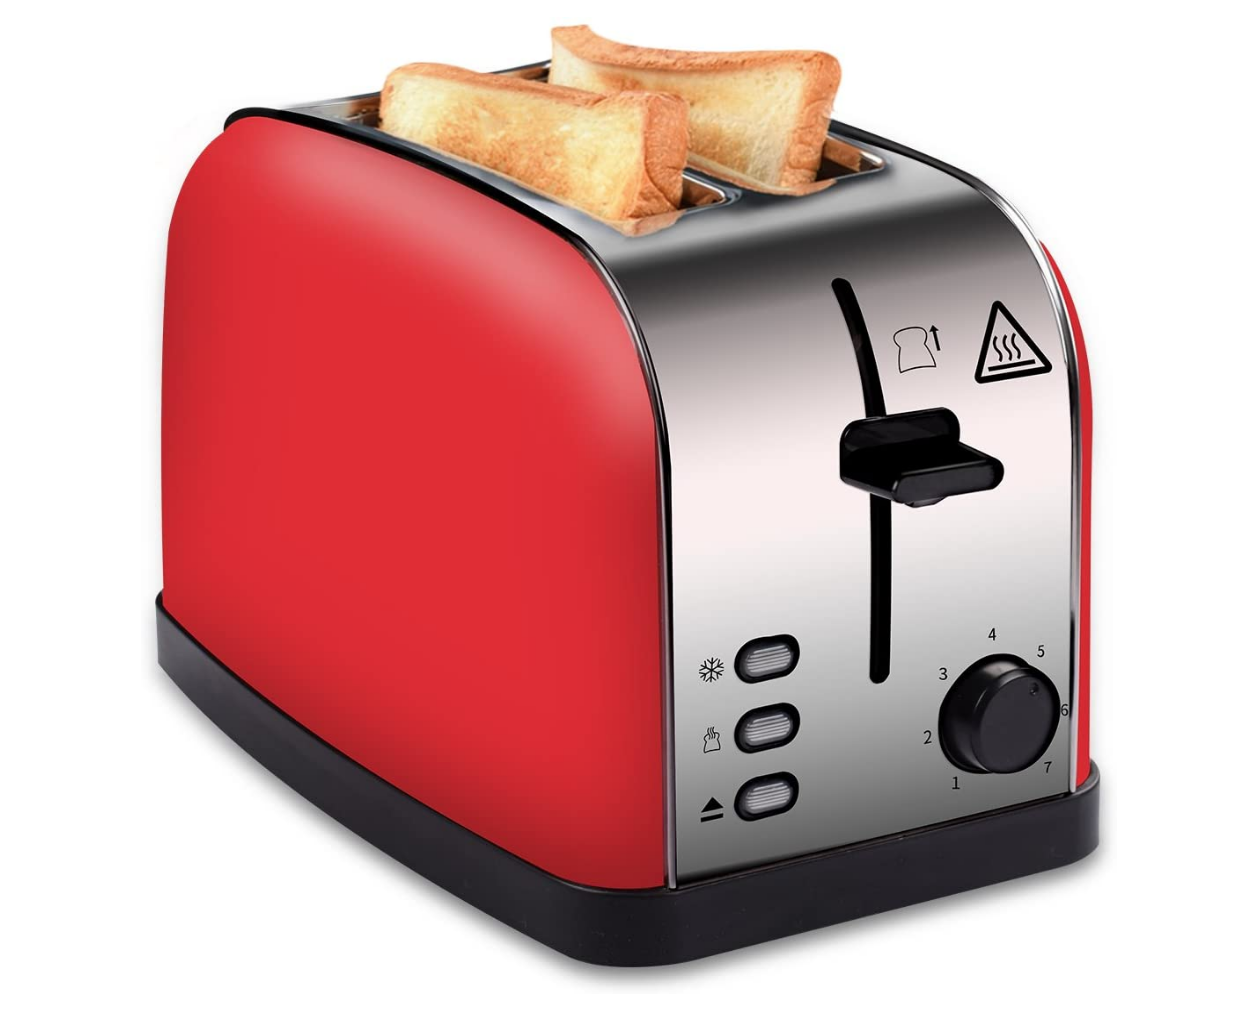 COSSCCI 2 Slot Toaster with a Slide-Out Crumb Tray.